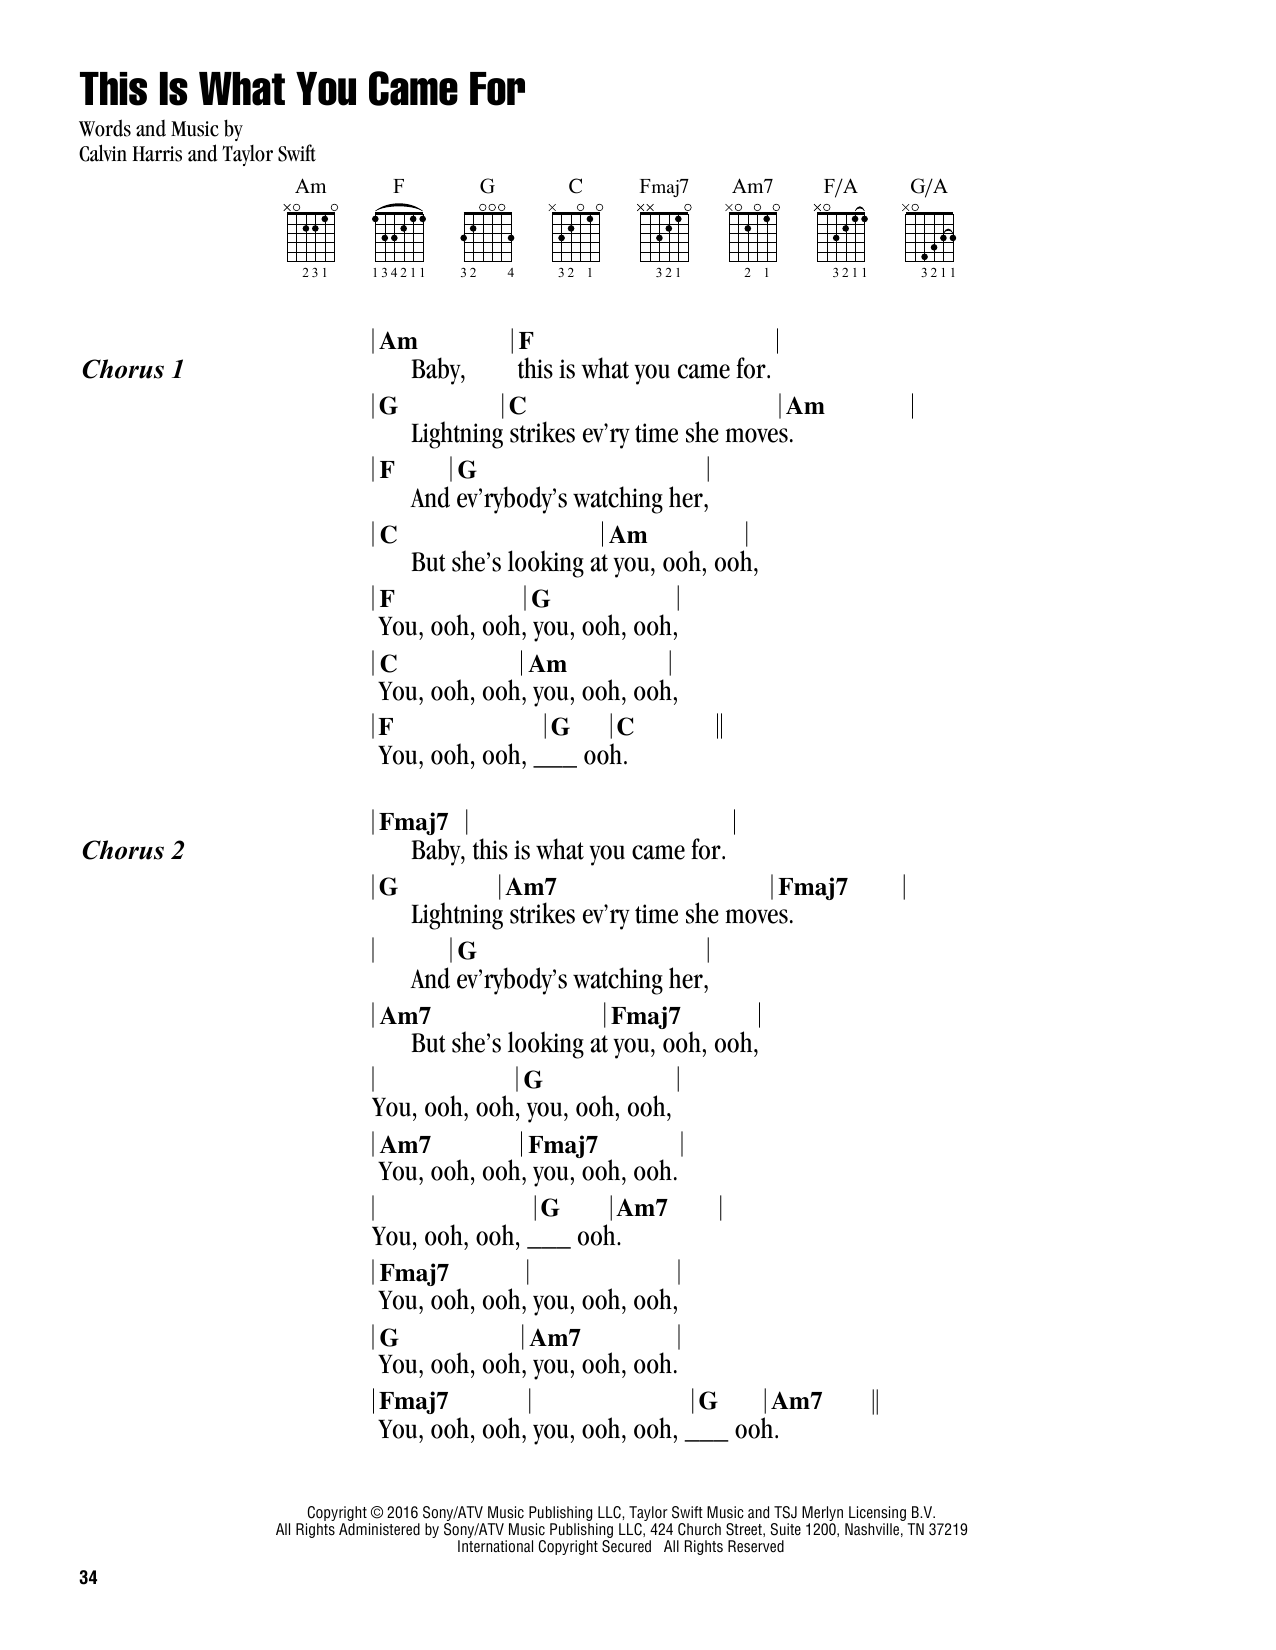 This Is What You Came For (feat. Rihanna) (Guitar Chords/Lyrics)